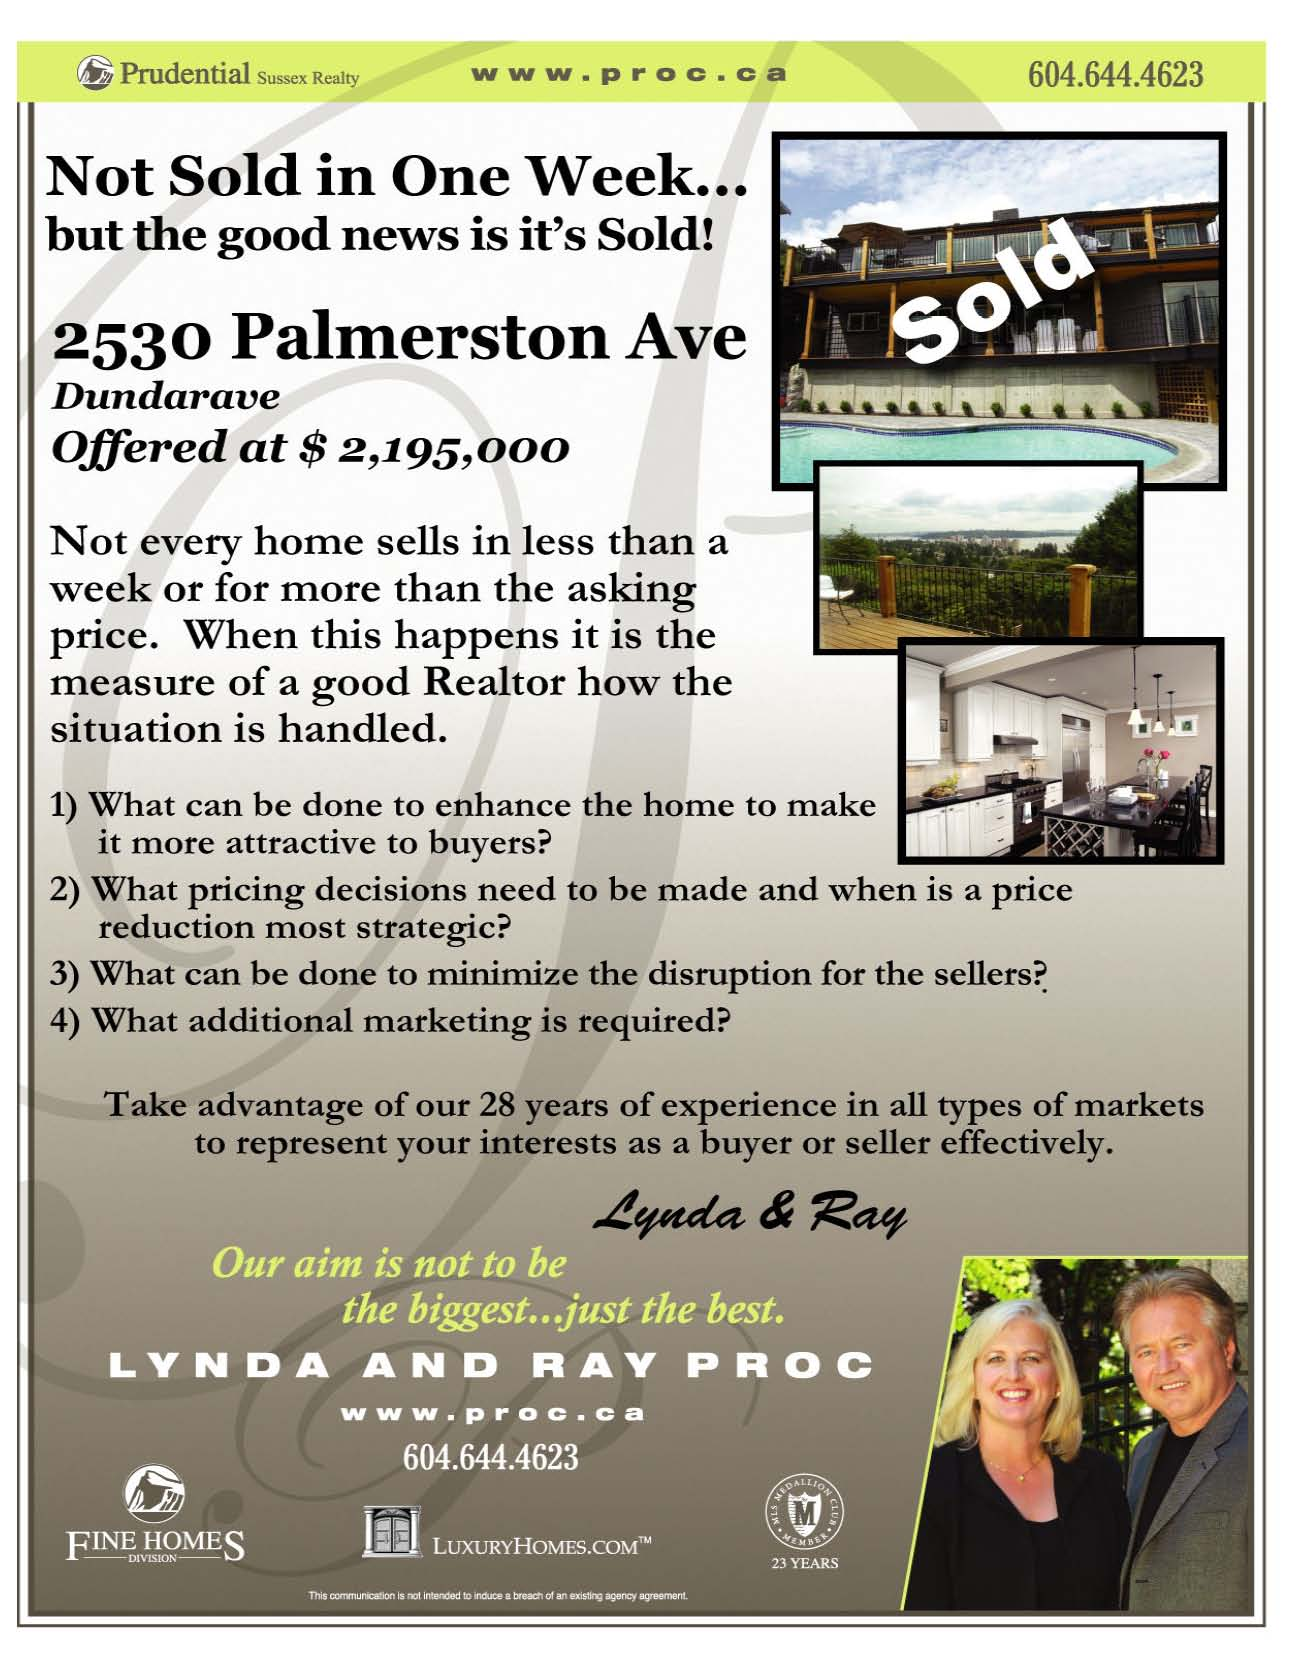 realtor marketing do just flyers work good ideas are a just flyer click for larger image